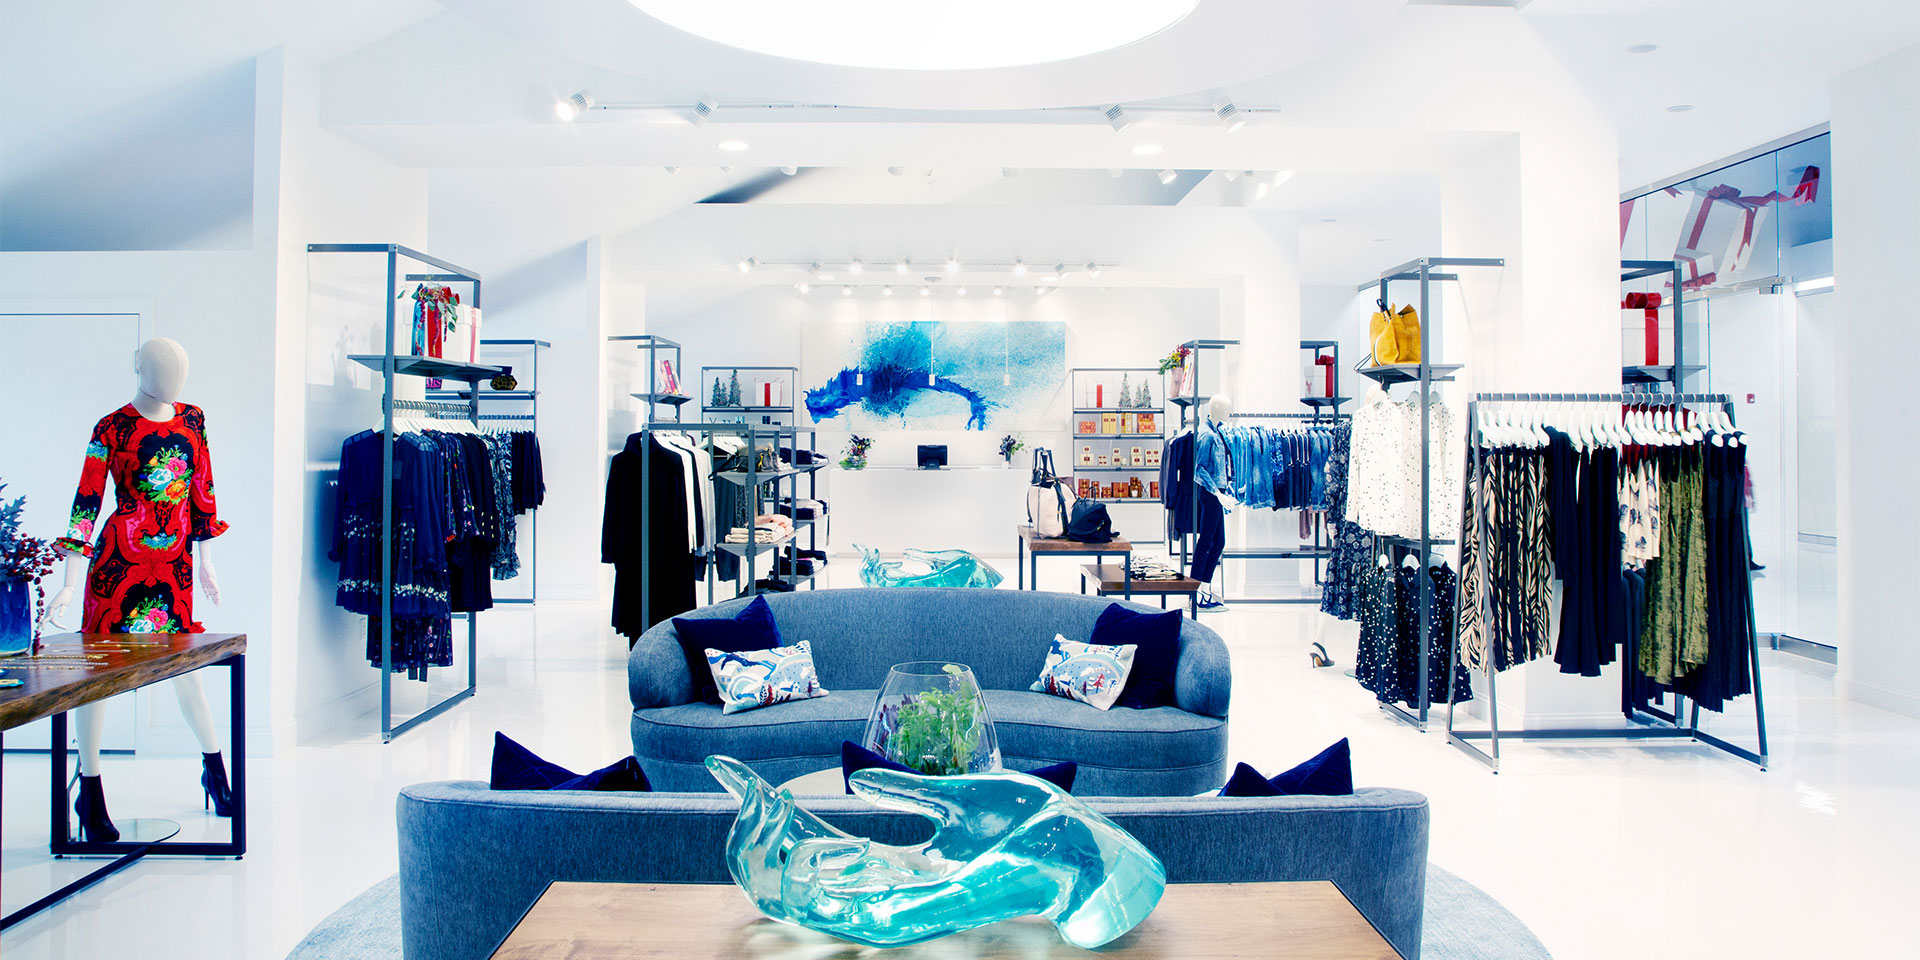 interior of a white fancy clothing store with blue couches